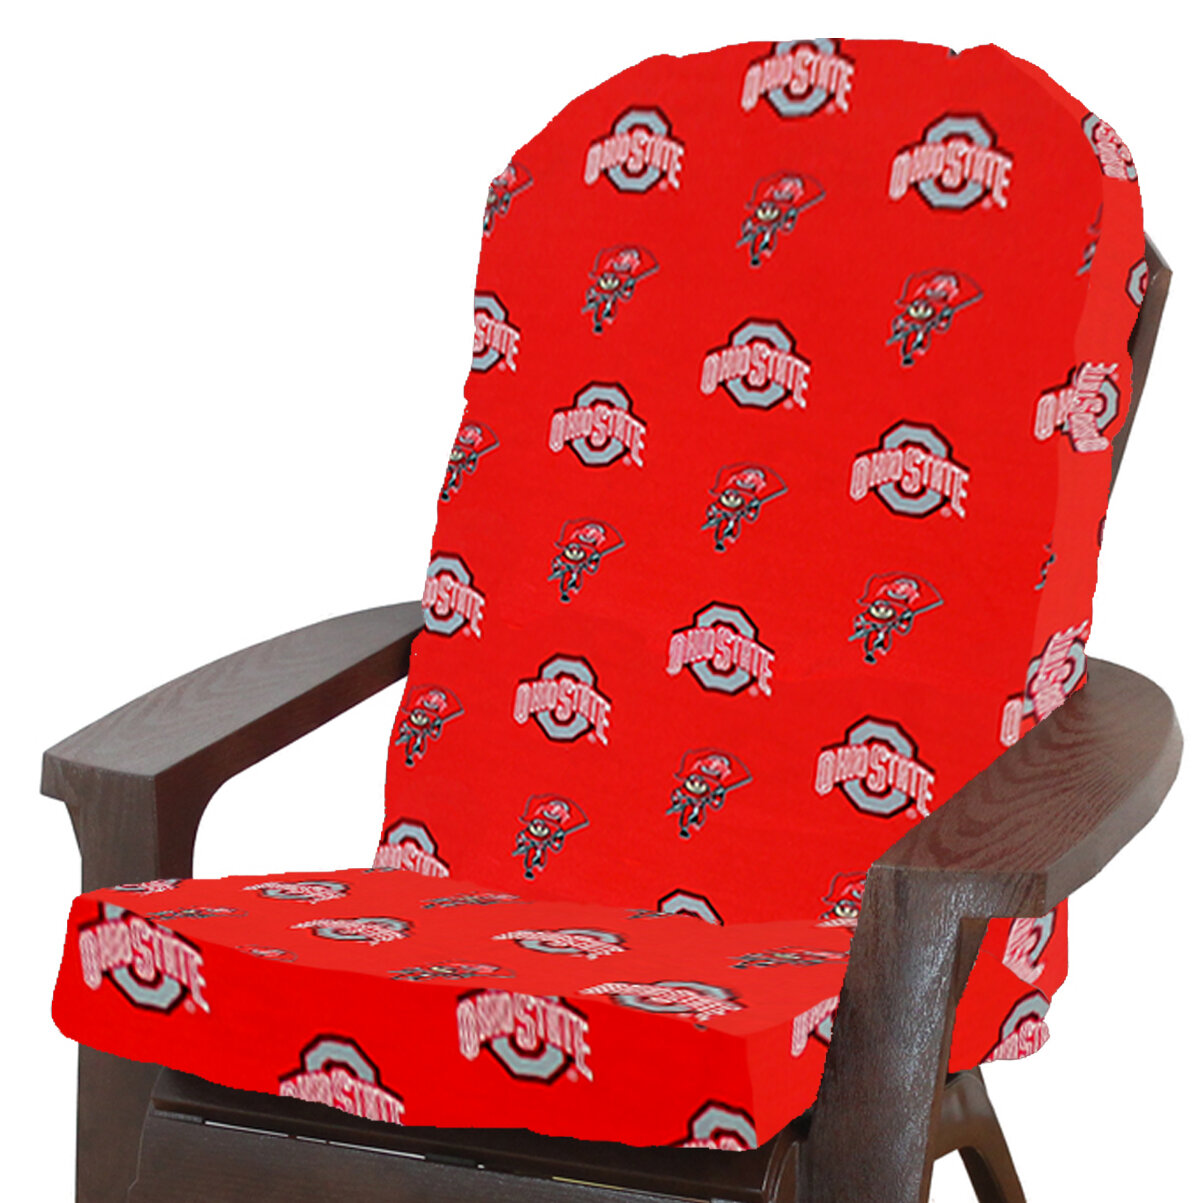 College Covers Ncaa Ohio State Indoor Outdoor Adirondack Chair Cushion Wayfair